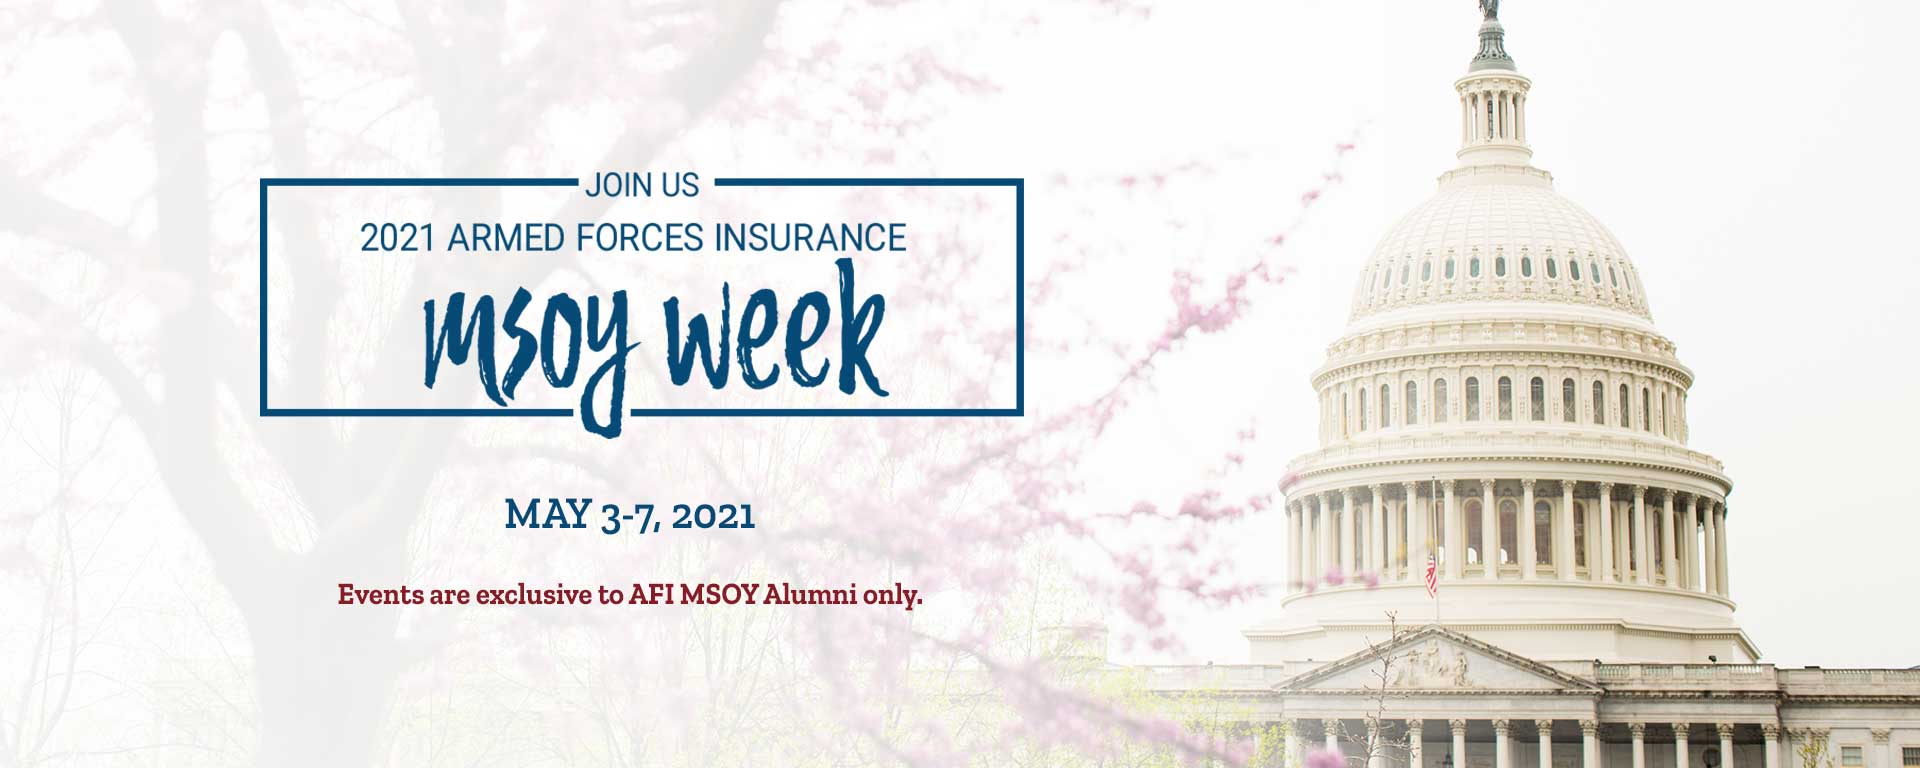 Join Us 2021 Armed Forces Insurance MSOY Week, May 3-7, 2021.